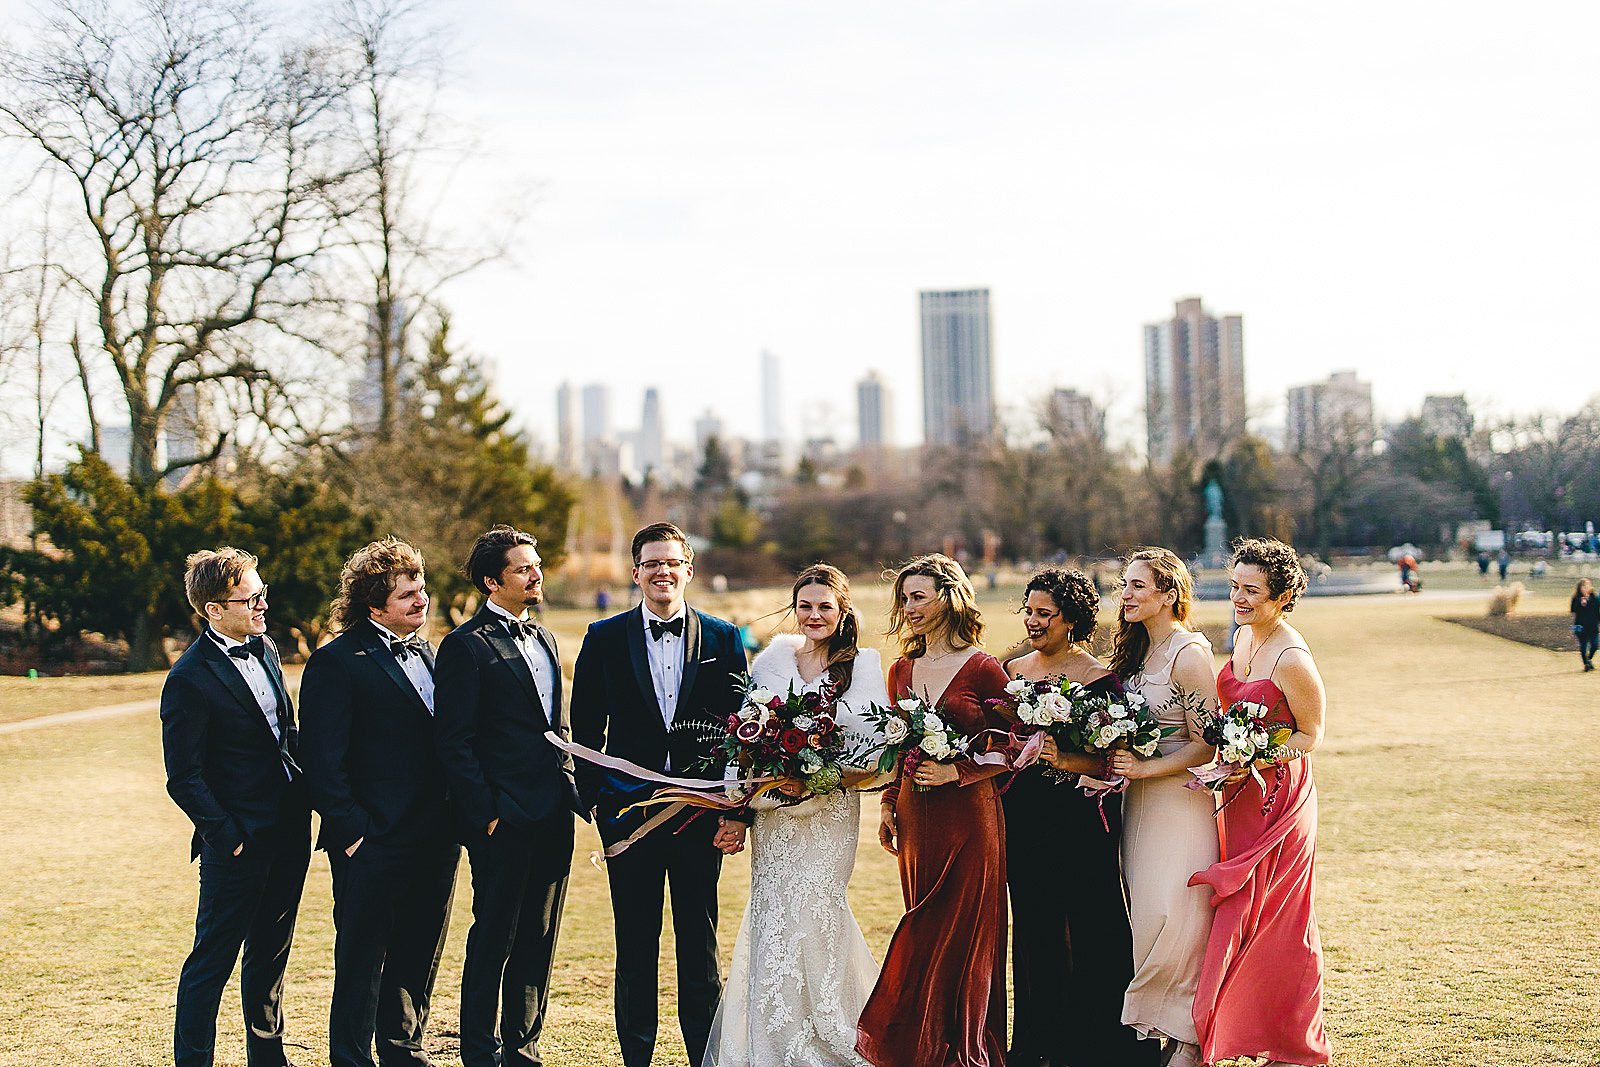 23 chicago wedding photograhy - The Wedding of Samantha + Kyle in Chicago